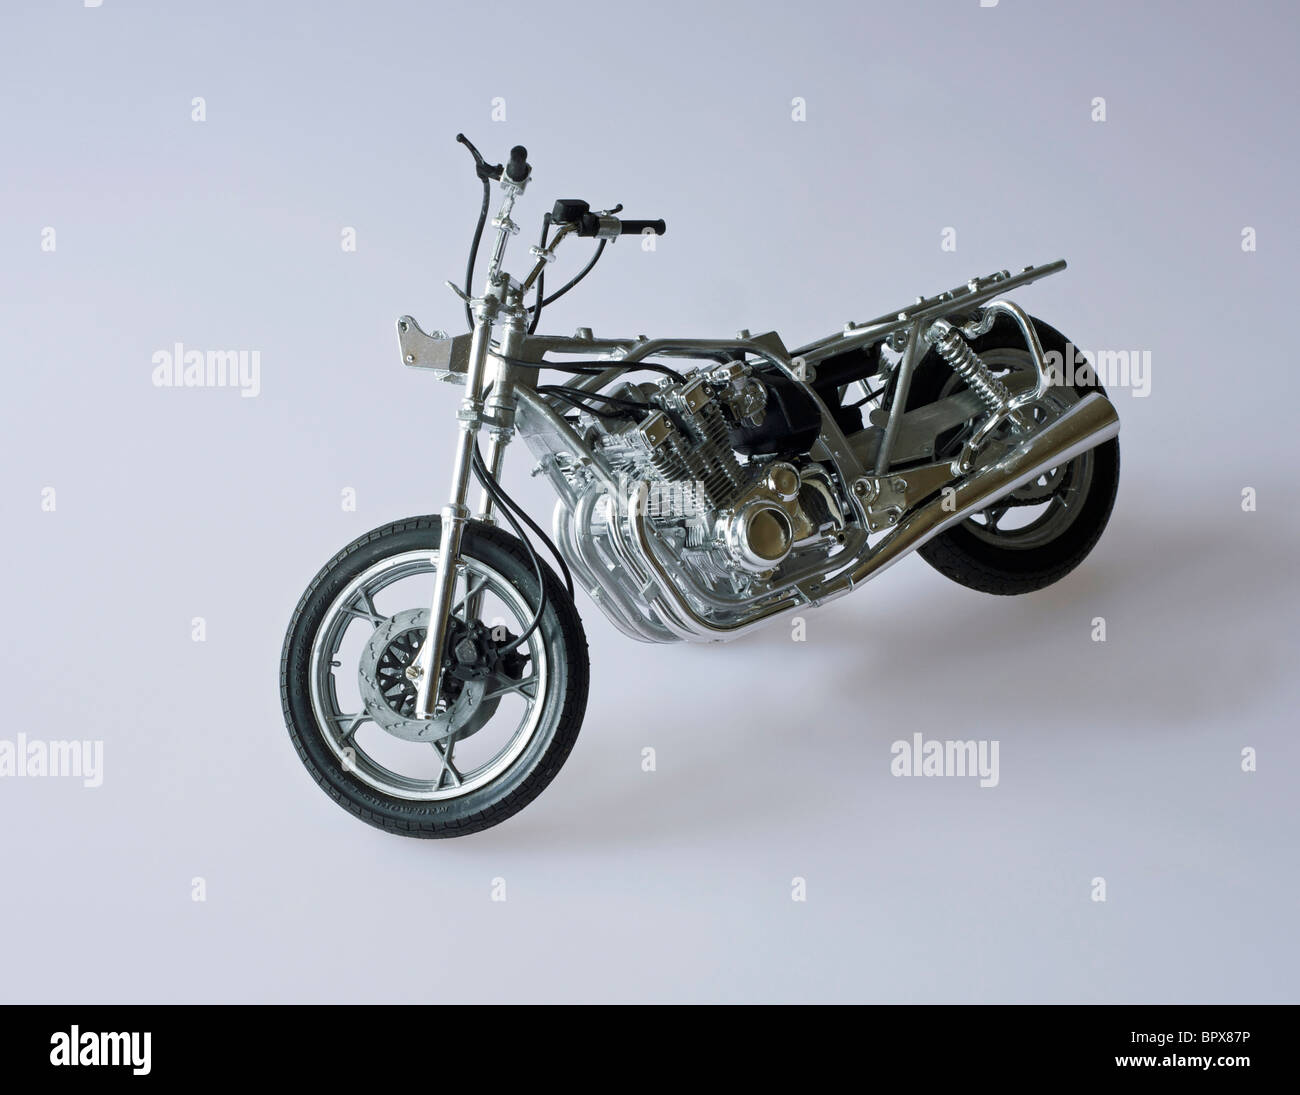 Motorcycle Model Stockfotos & Motorcycle Model Bilder - Alamy